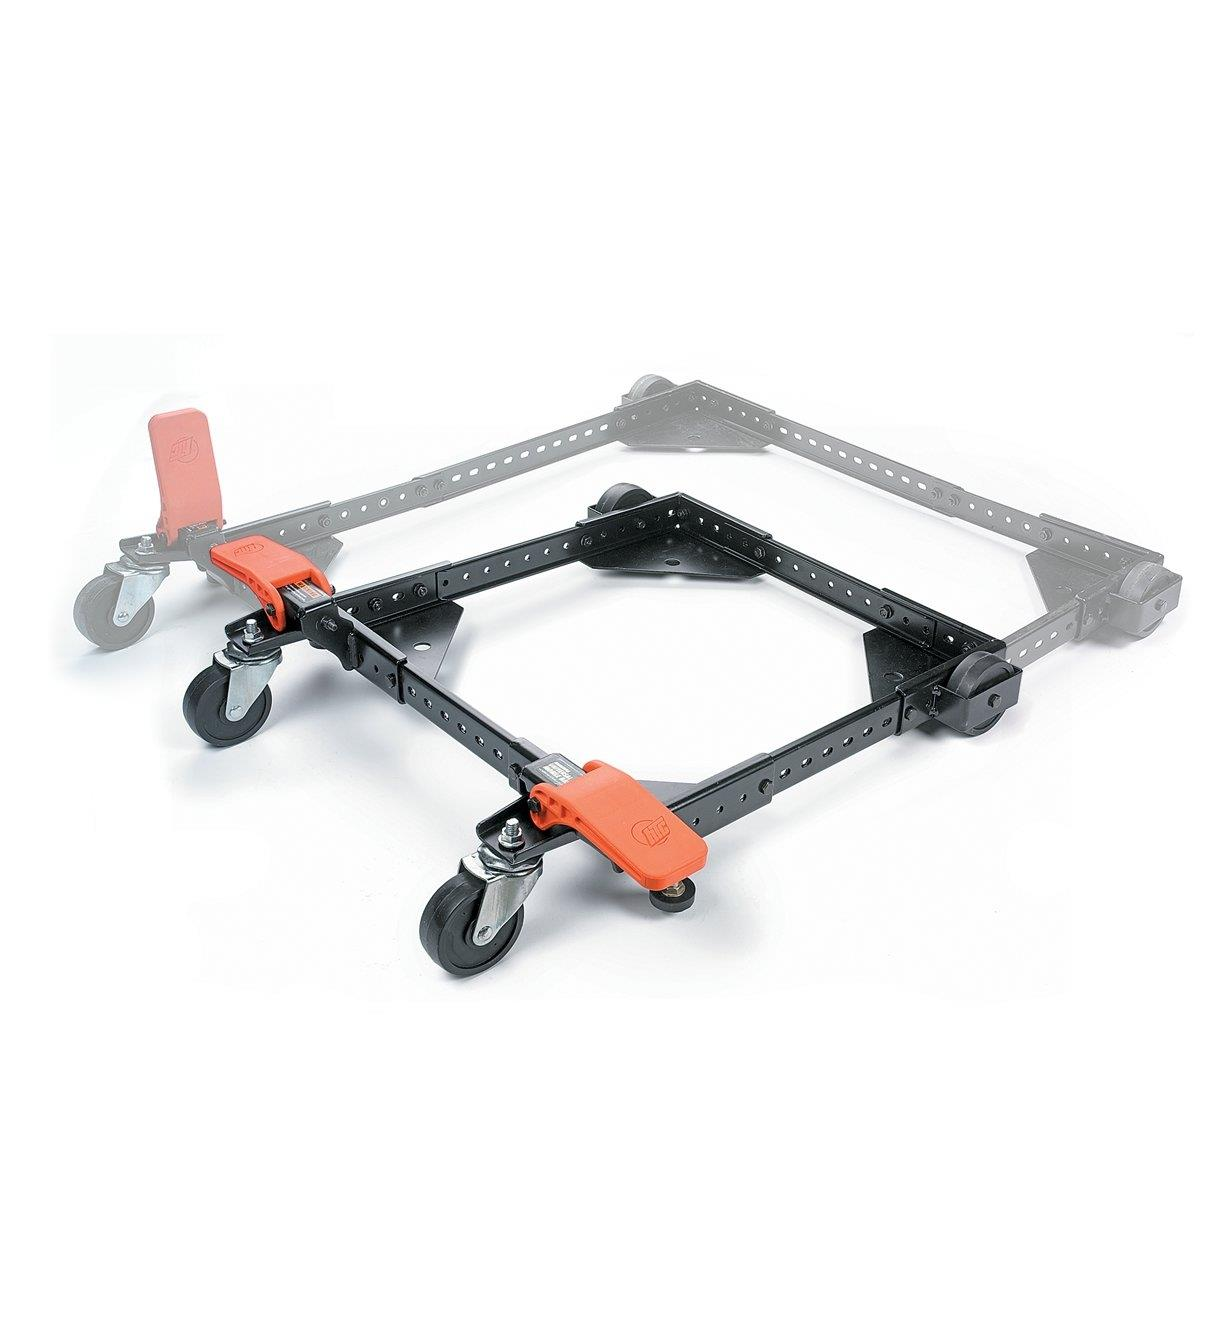 03J2505 - Mobile Machine Base